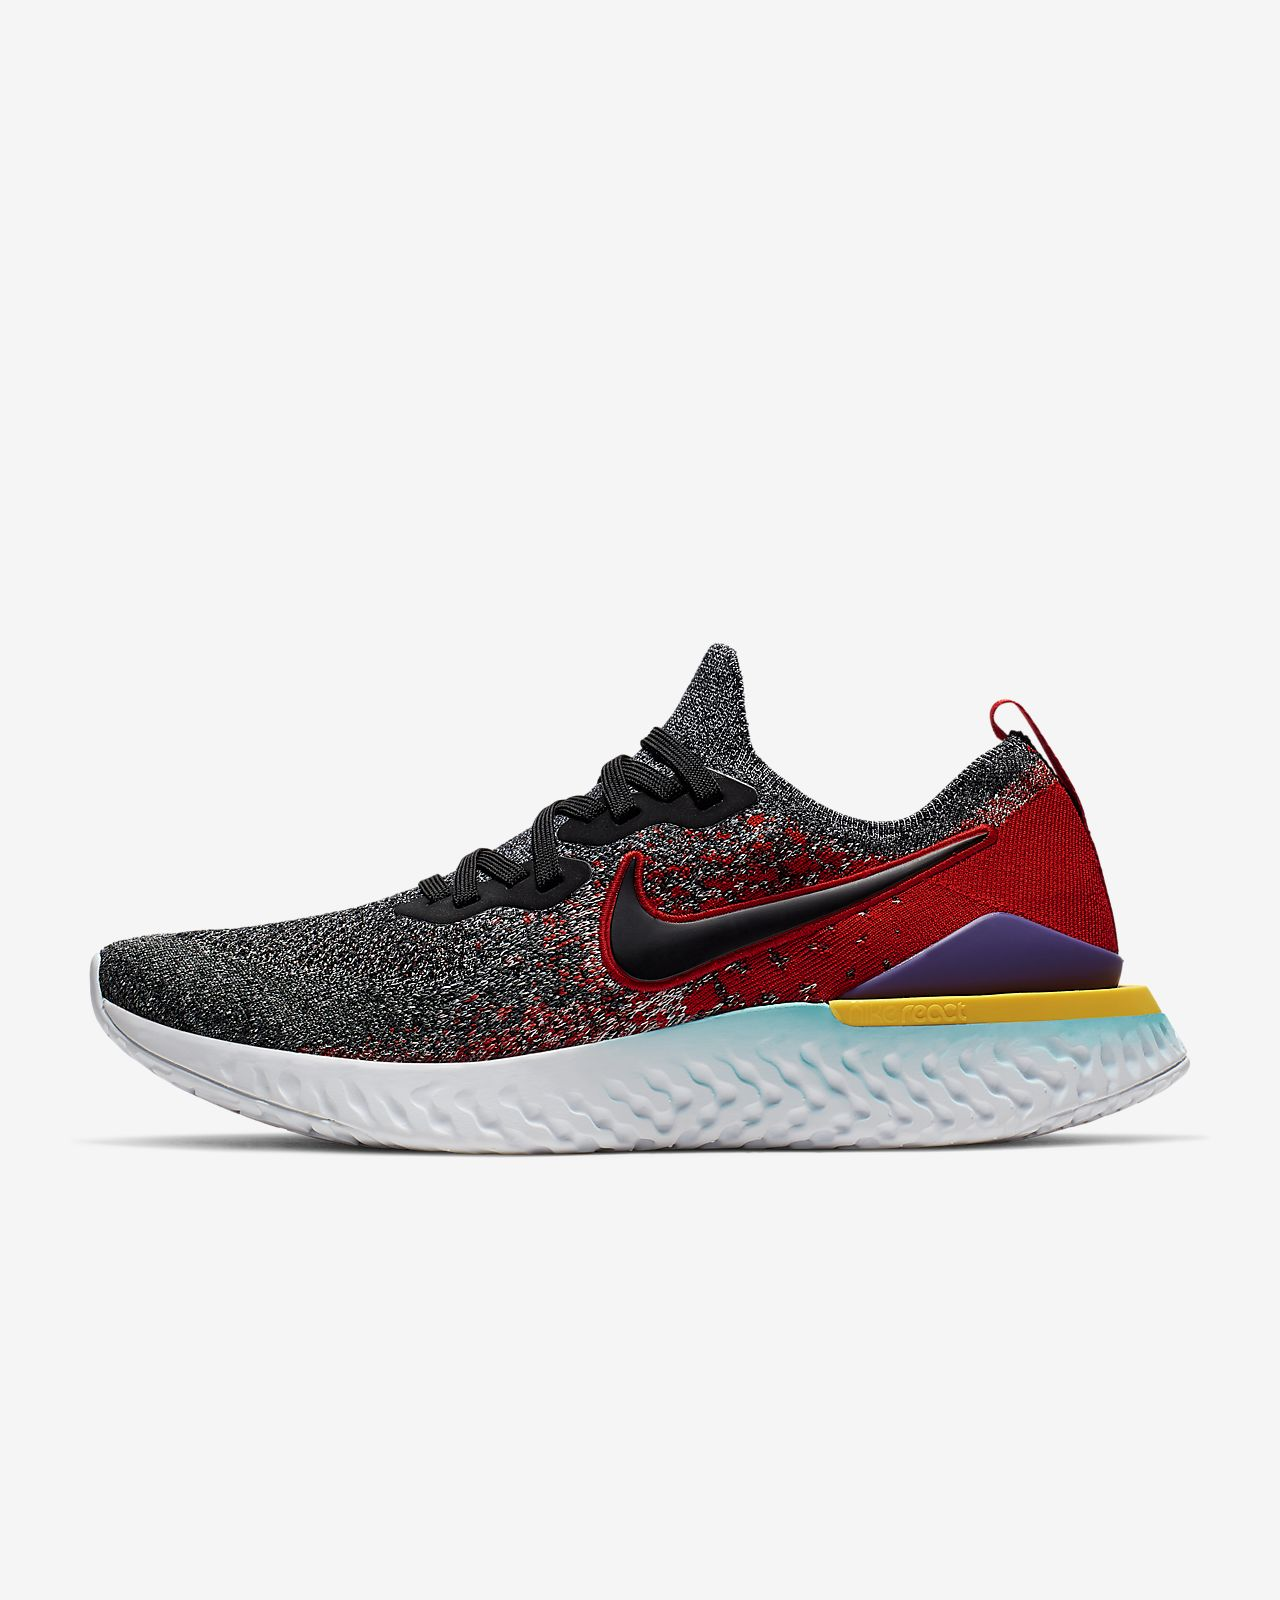 wholesale dealer a230d 39ba8 ... Chaussure de running Nike Epic React Flyknit 2 pour Homme